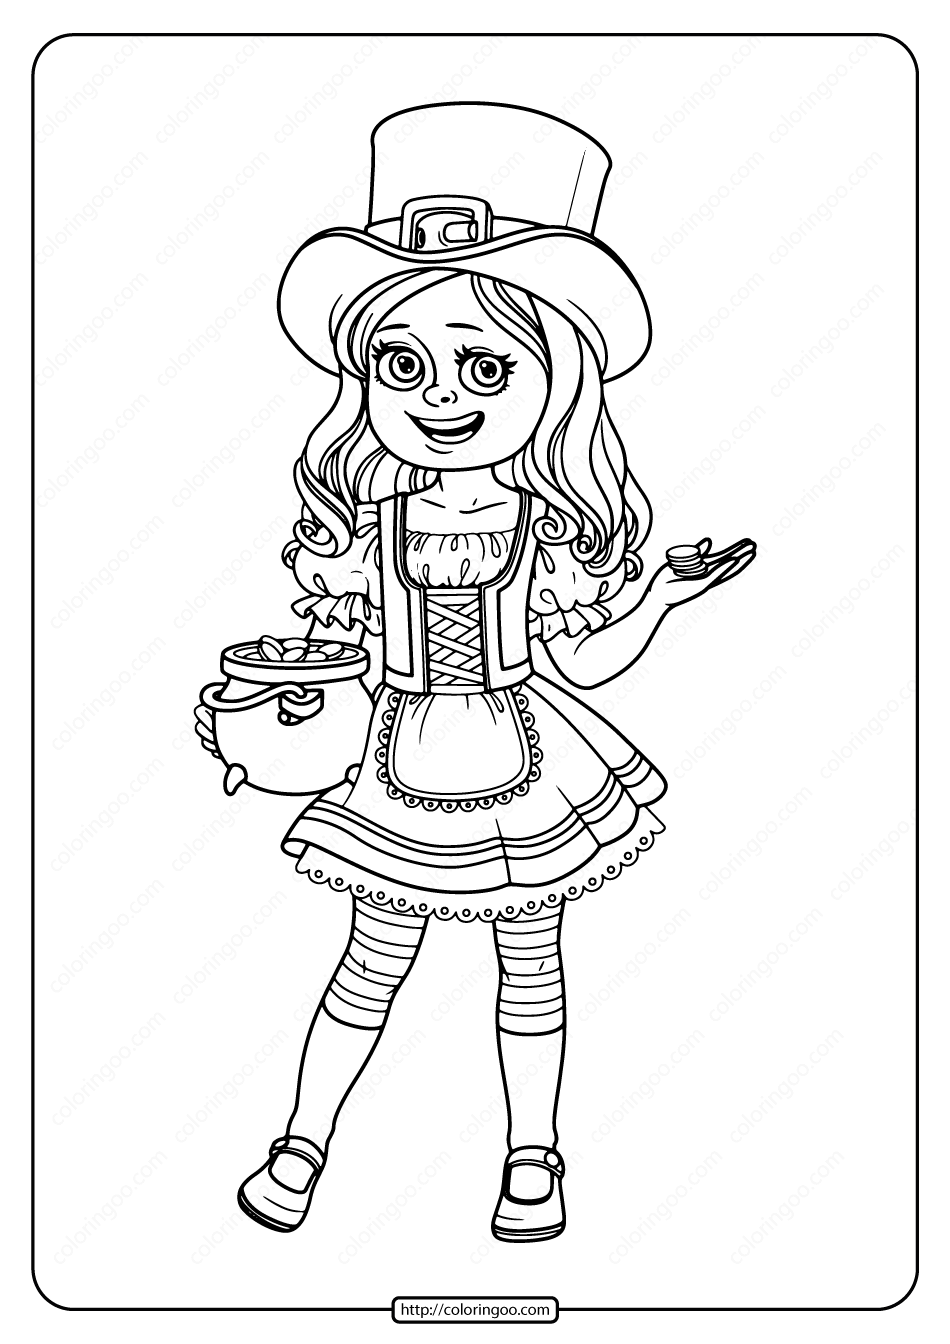 Printable Girl in St. Patrick's Day Costume Coloring Page